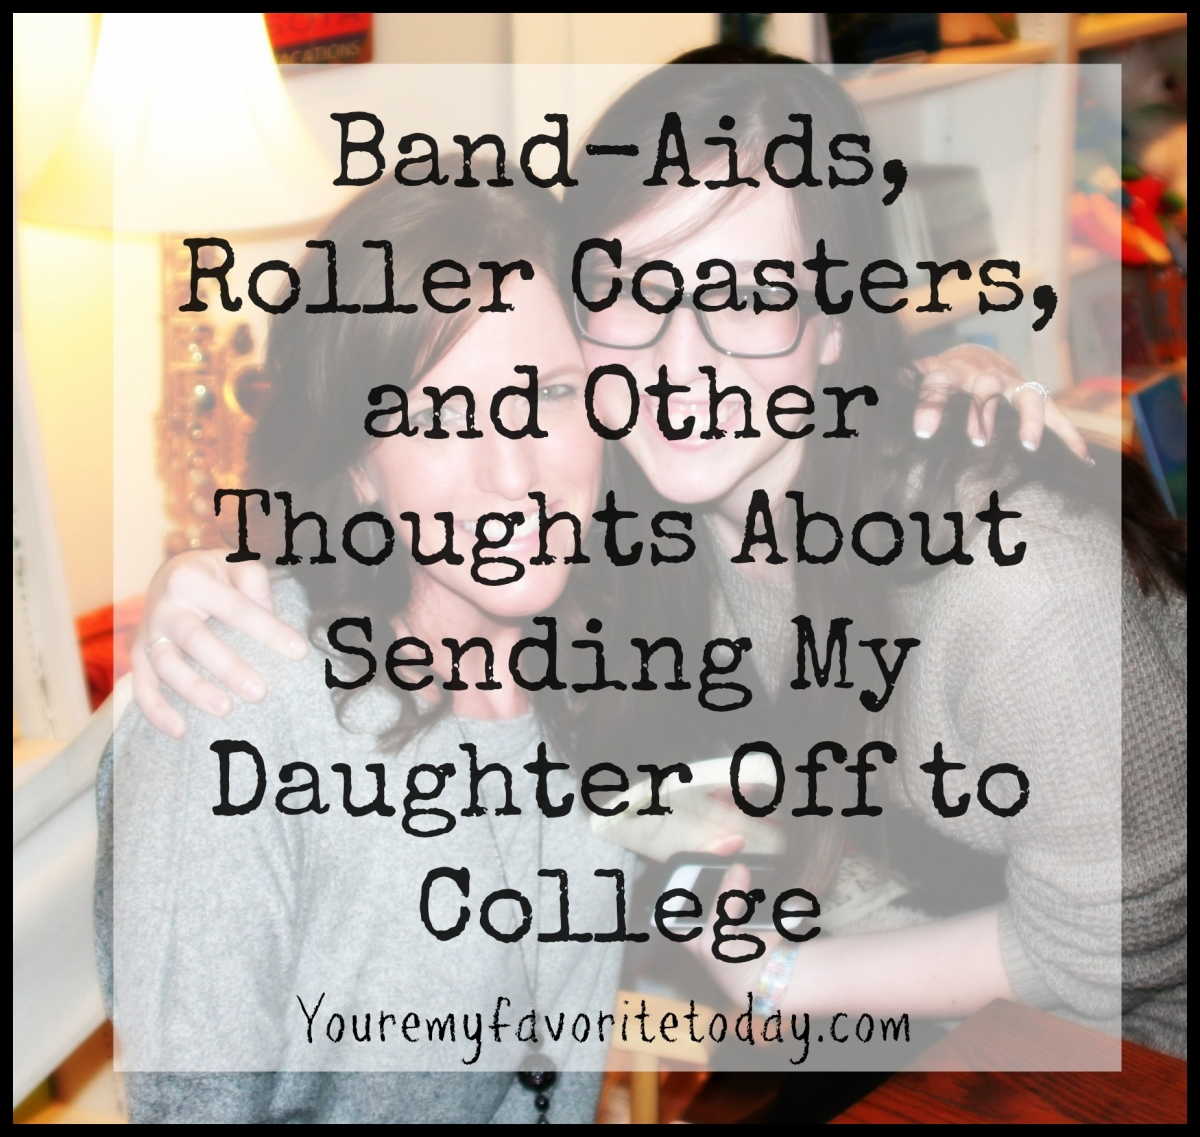 College Graduation Quotes For Daughter: Band-aids, Roller Coasters, And Other Thoughts About